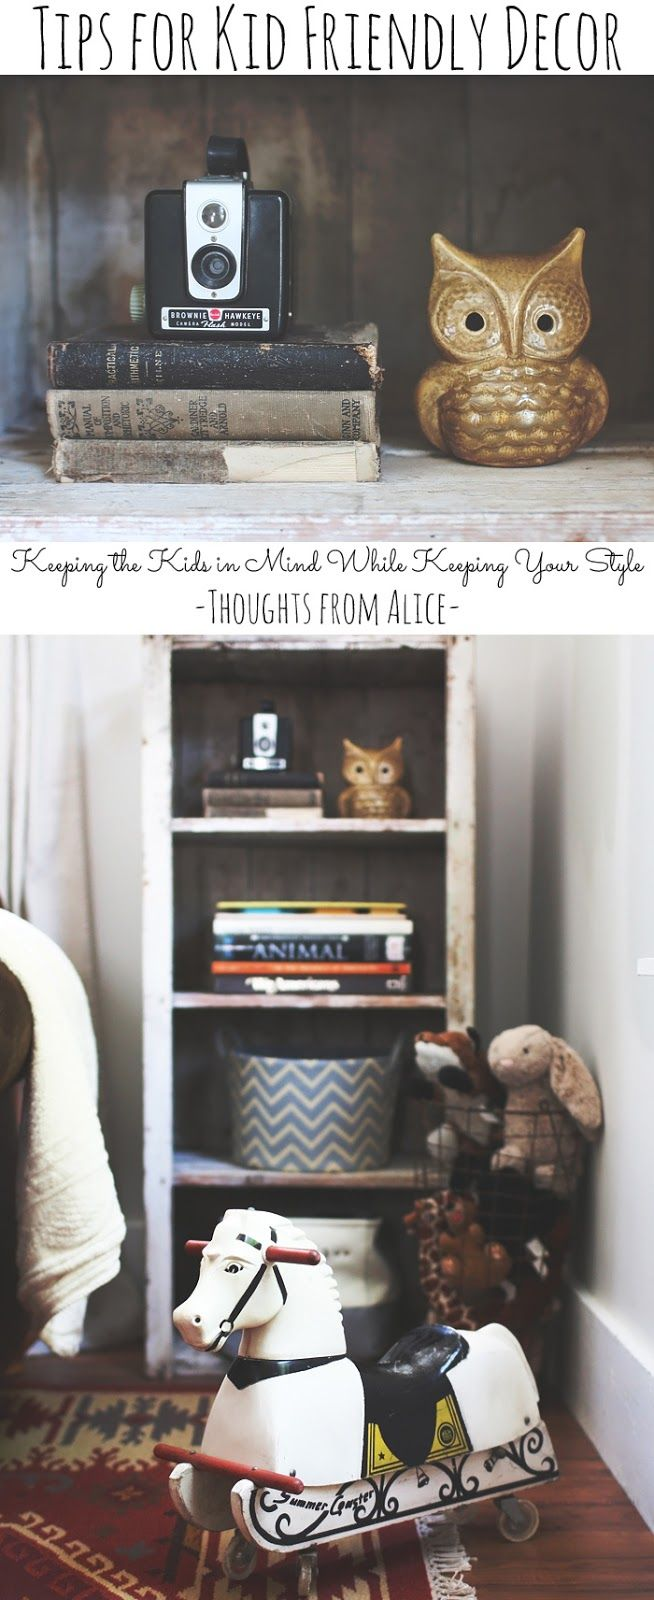 Struggle with keeping your personal decorating style with young kids in the home? Check out these 5 Tips for Kid Friendly Decor!